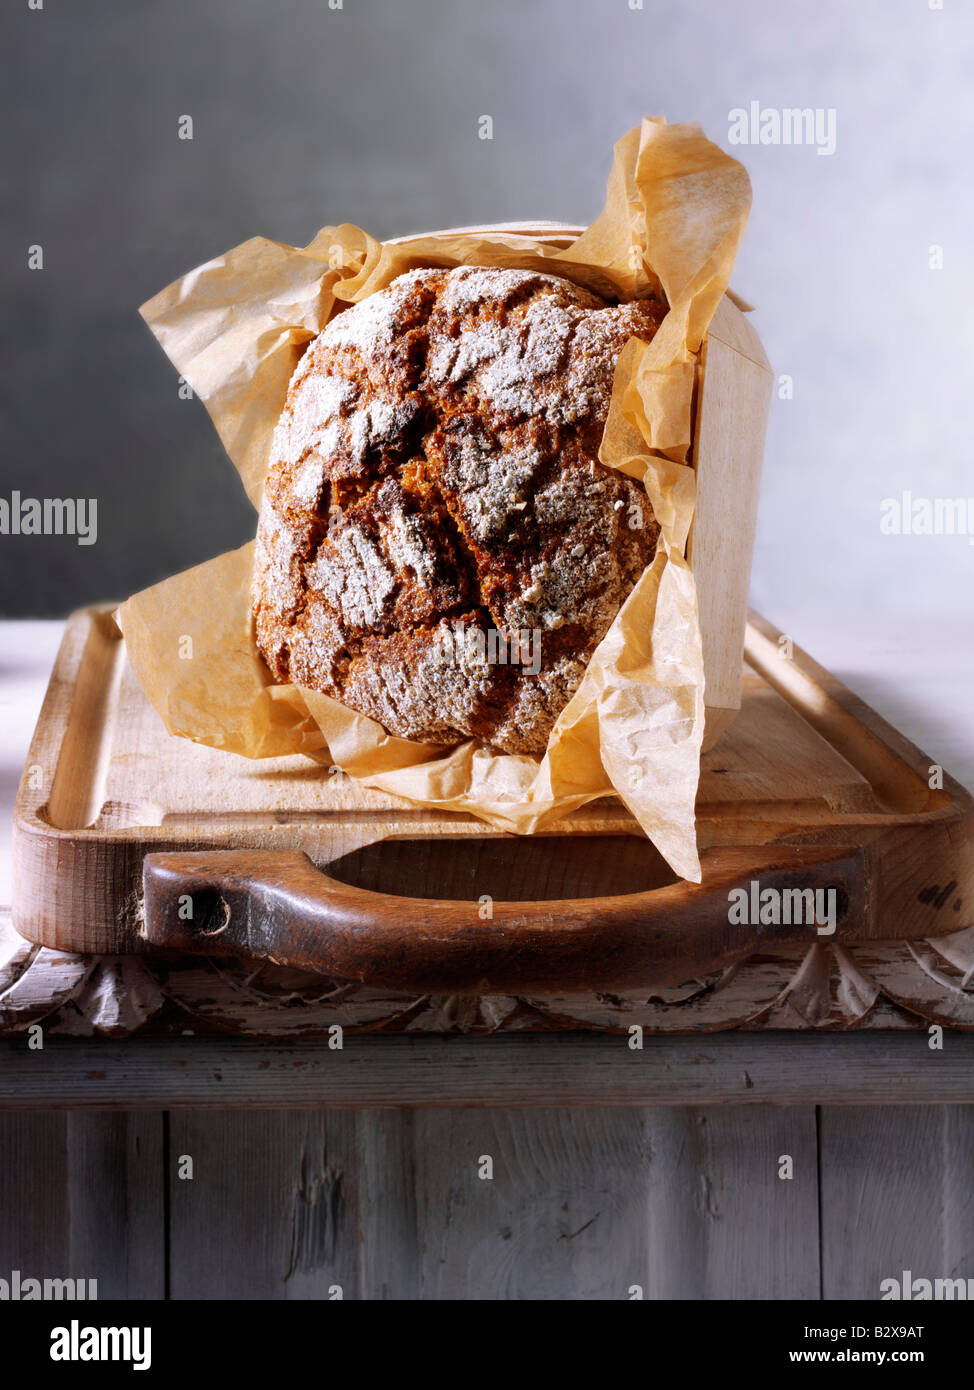 Yorkshire Cobble bread loaf - Stock Image